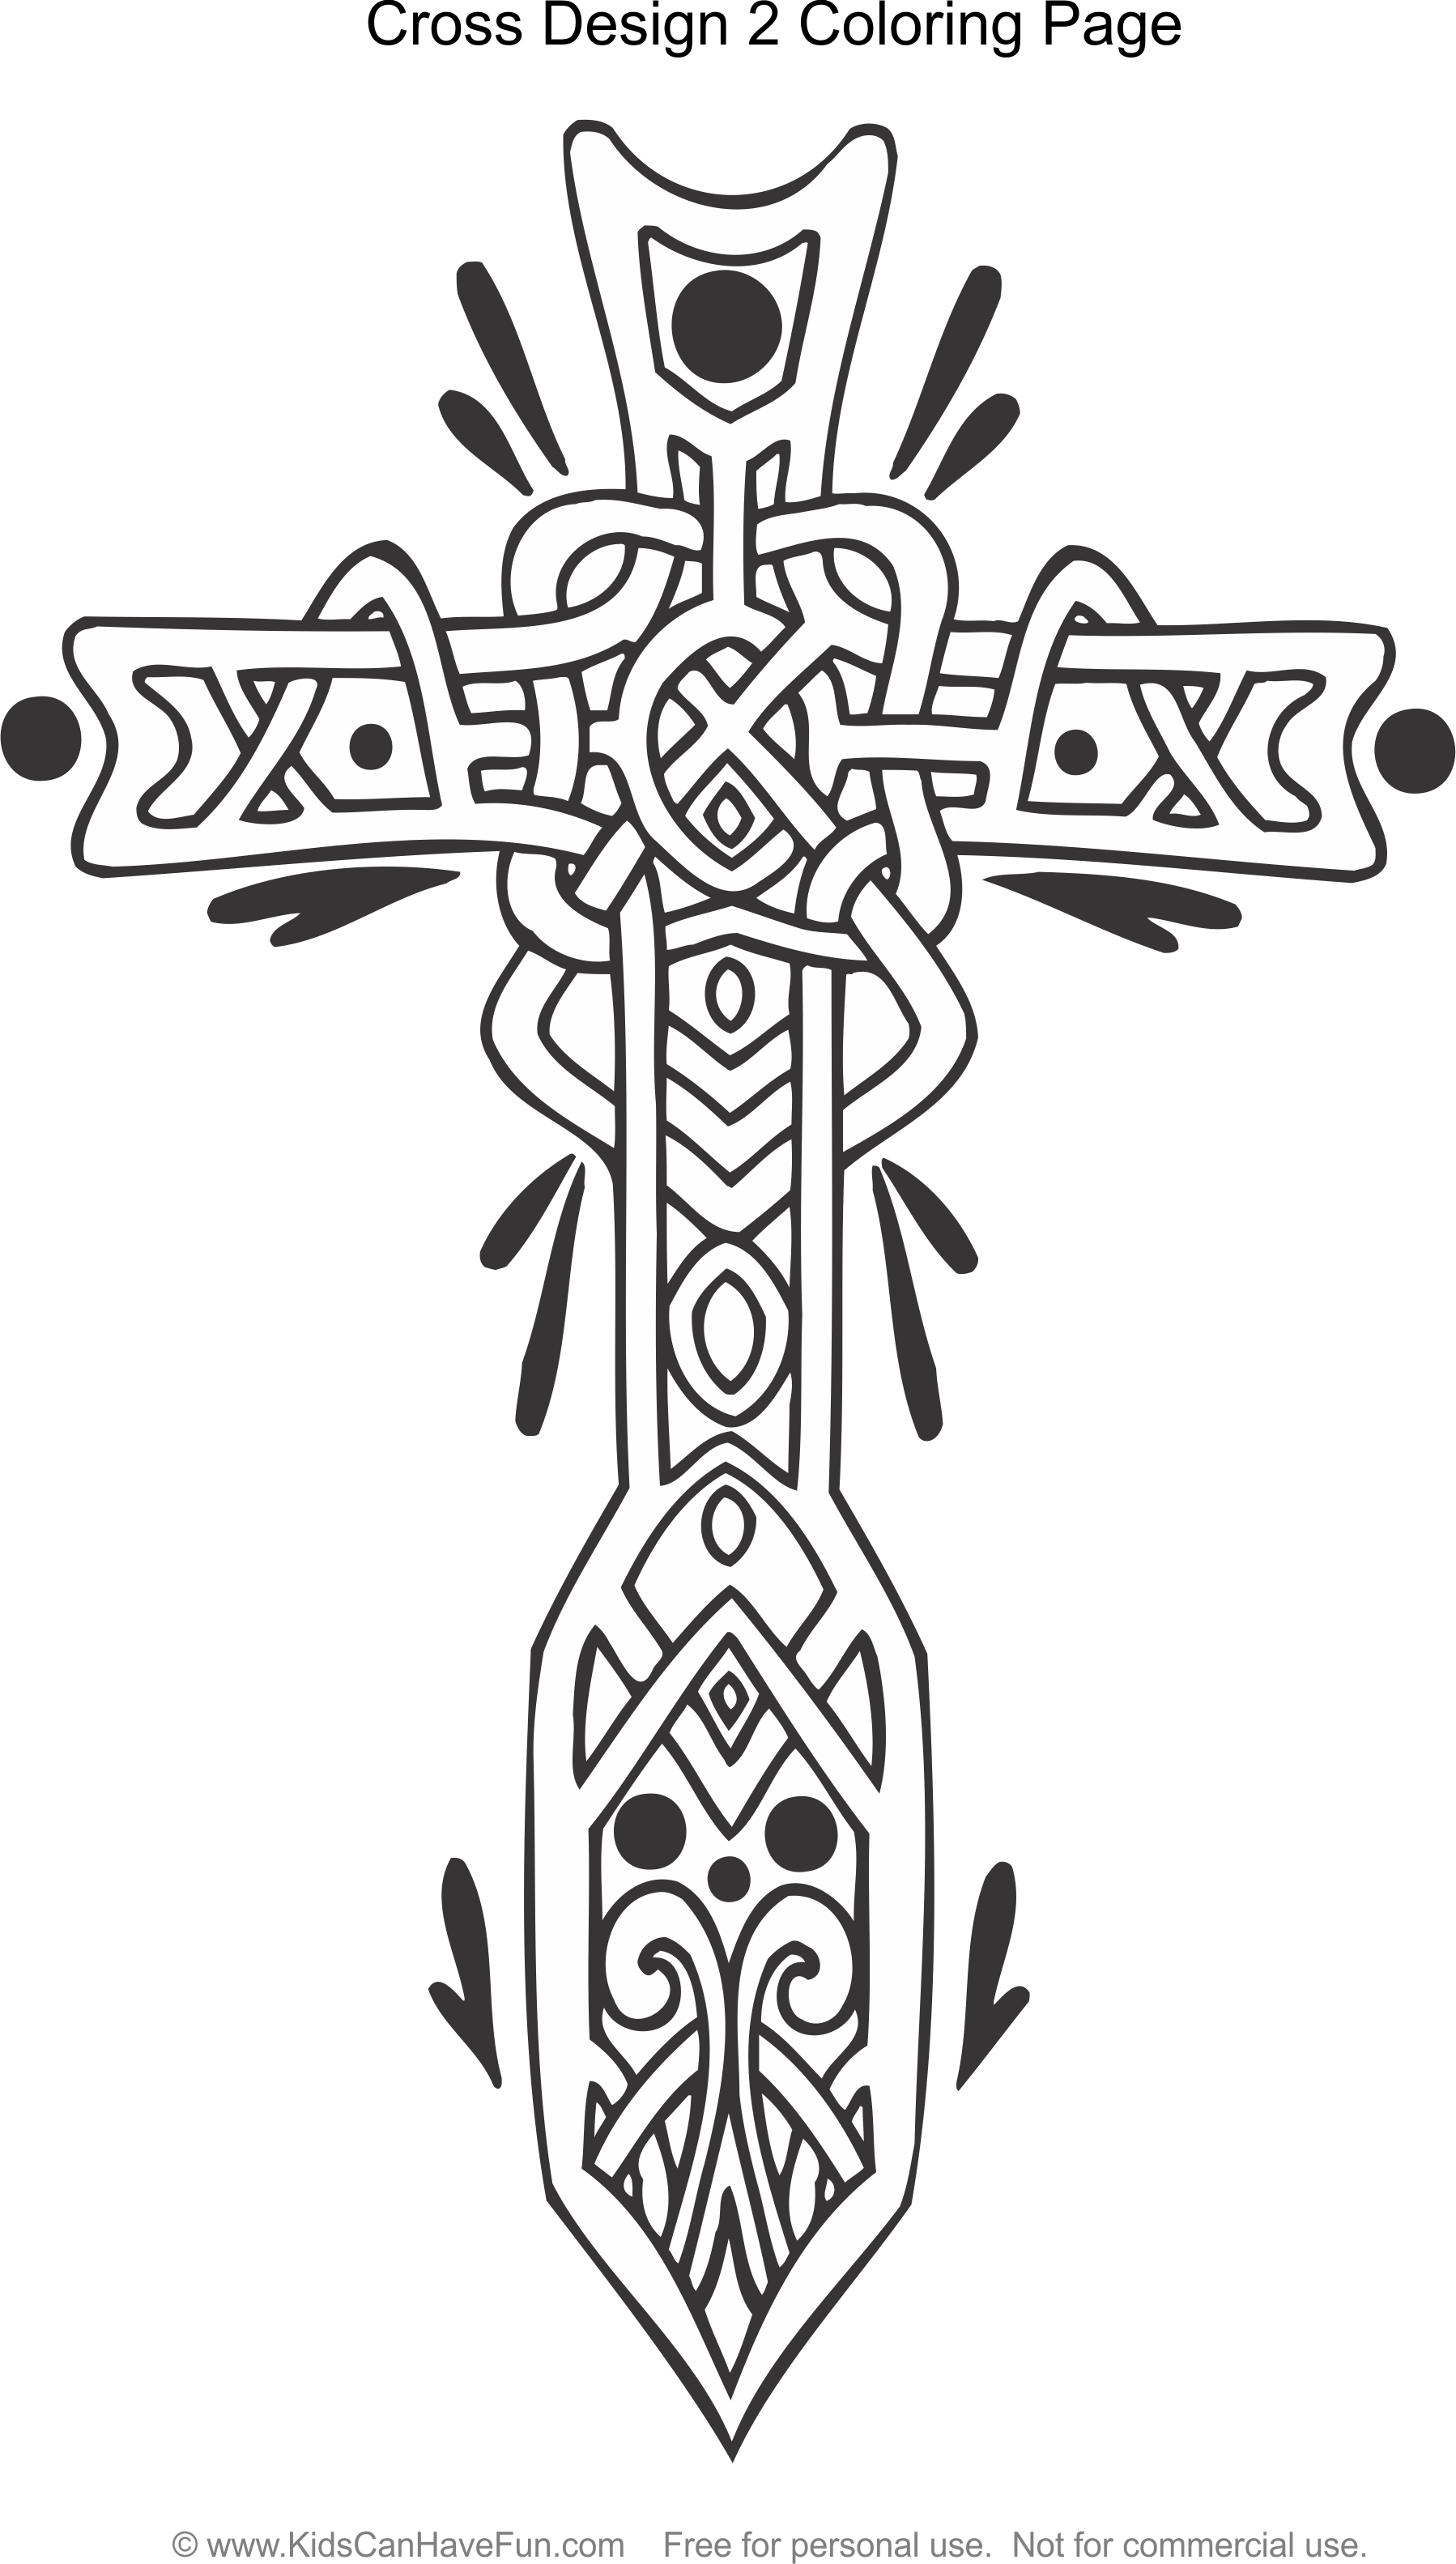 Coloring pages crosses - Celtic Cross Design 2 Coloring Page